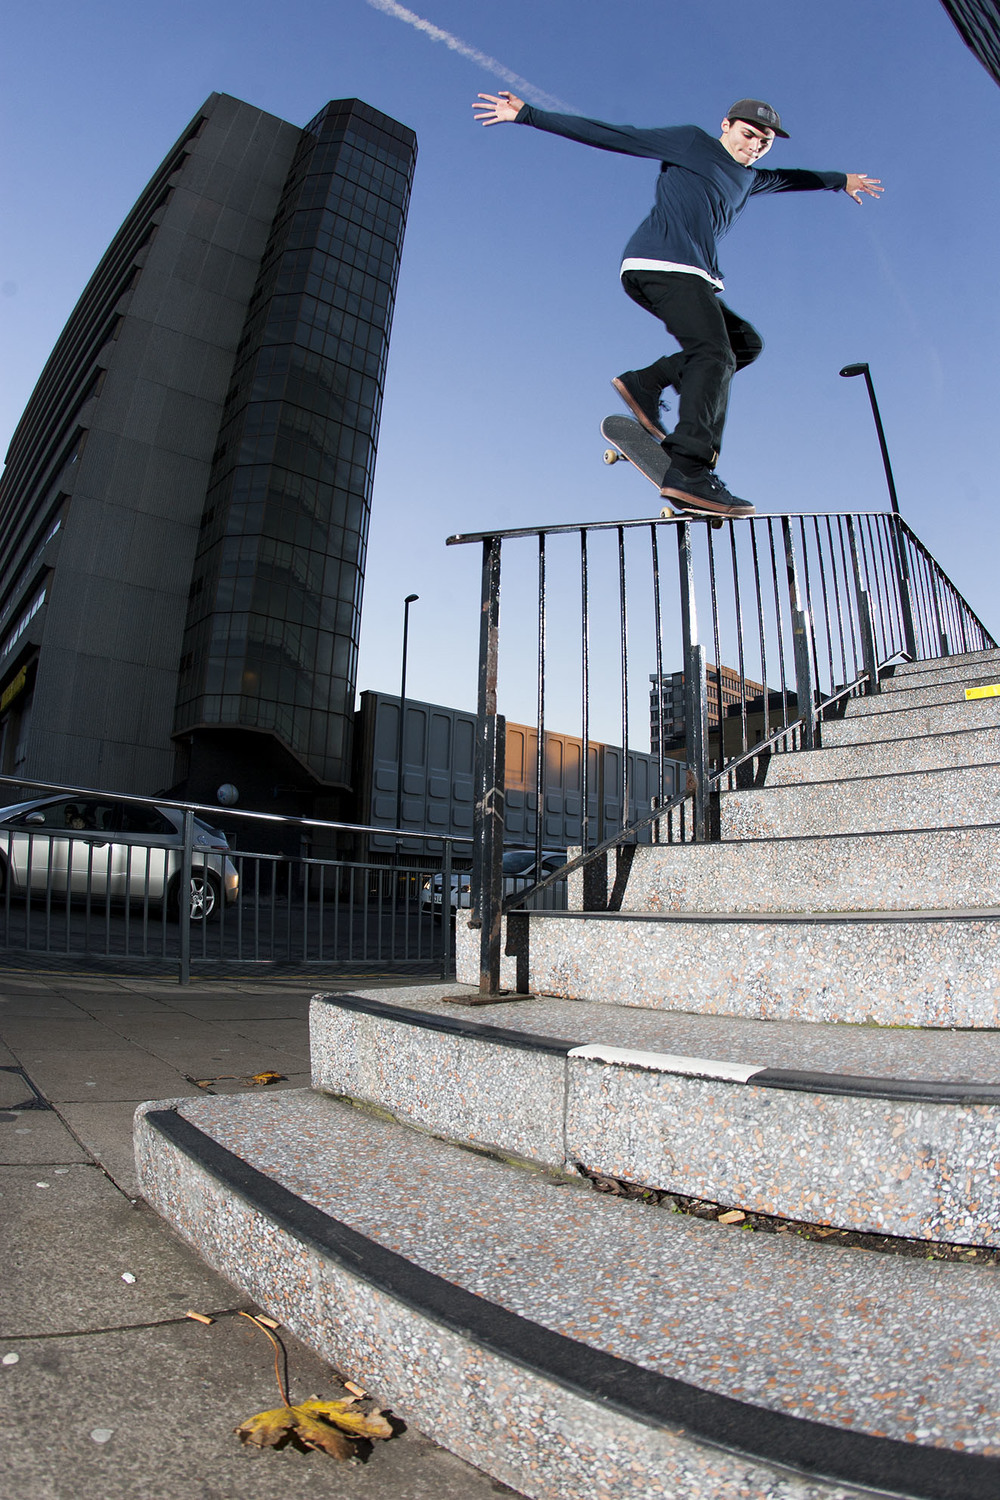 Manny Lopez - backside noseblunt